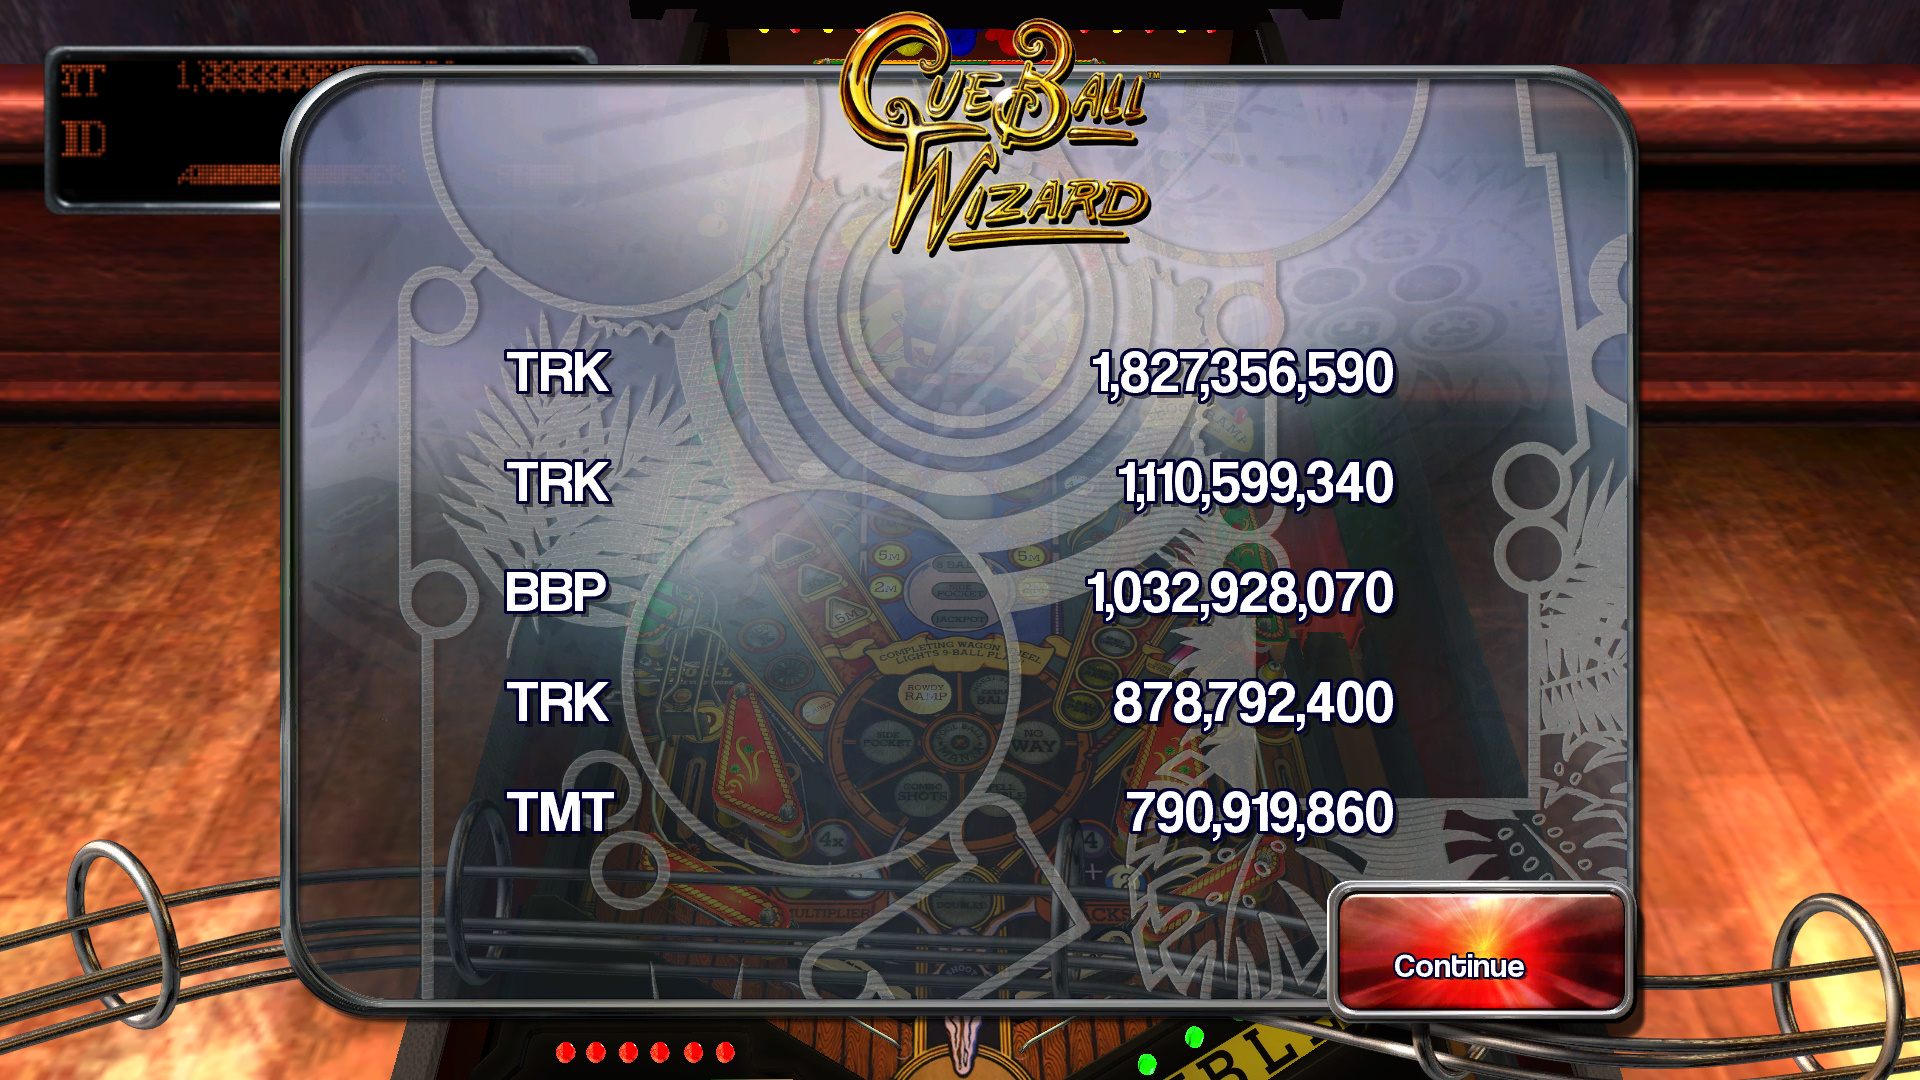 TheTrickster: Pinball Arcade: Cue Ball Wizard (PC) 1,827,356,590 points on 2015-11-13 18:22:17